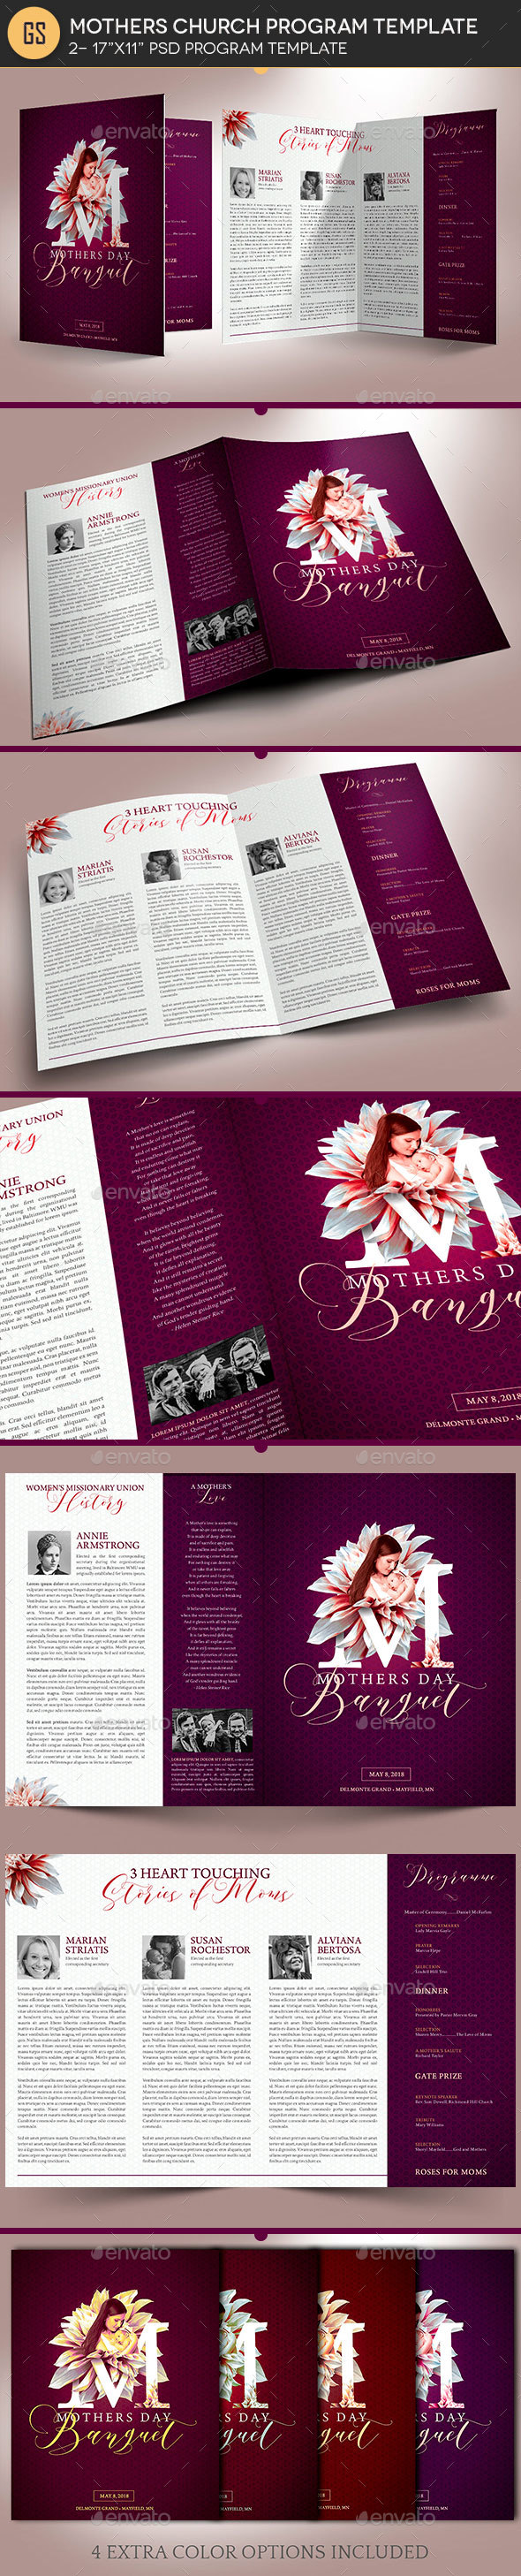 Mothers Day Church Program Template - Informational Brochures